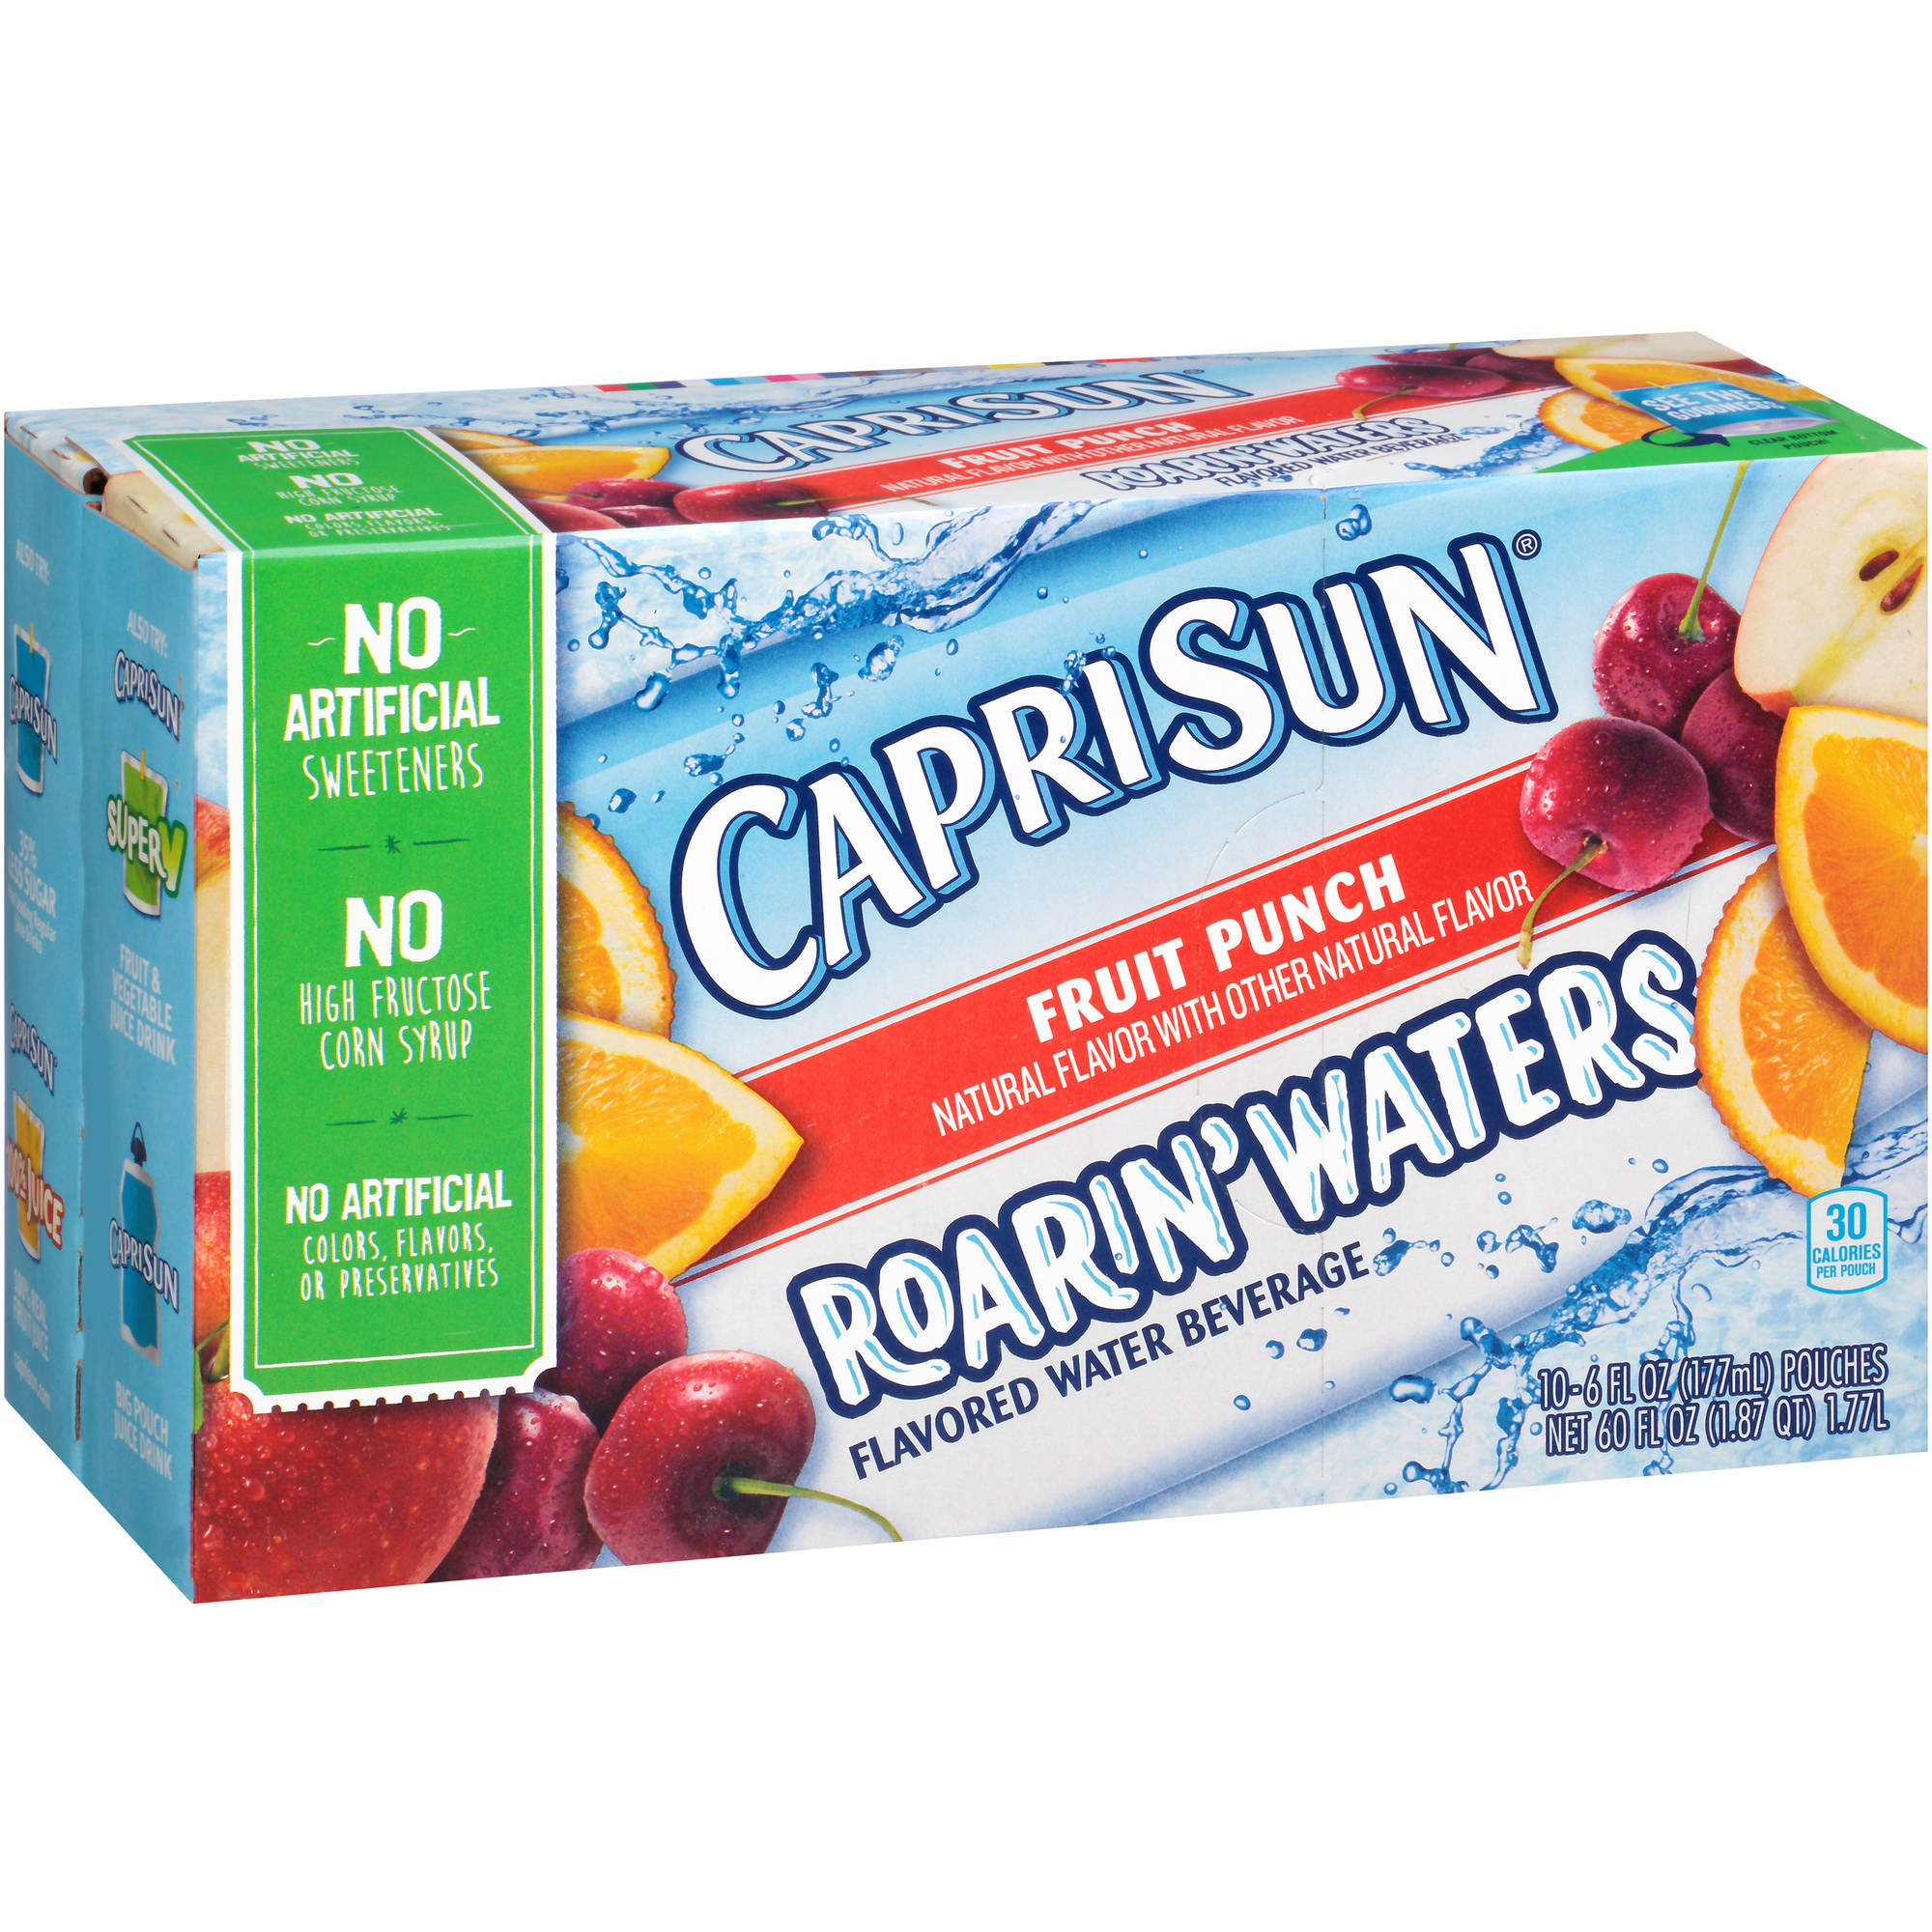 Capri Sun Roarin' Waters Fruit Punch Flavored Water Beverage, 6 fl oz, 10 count